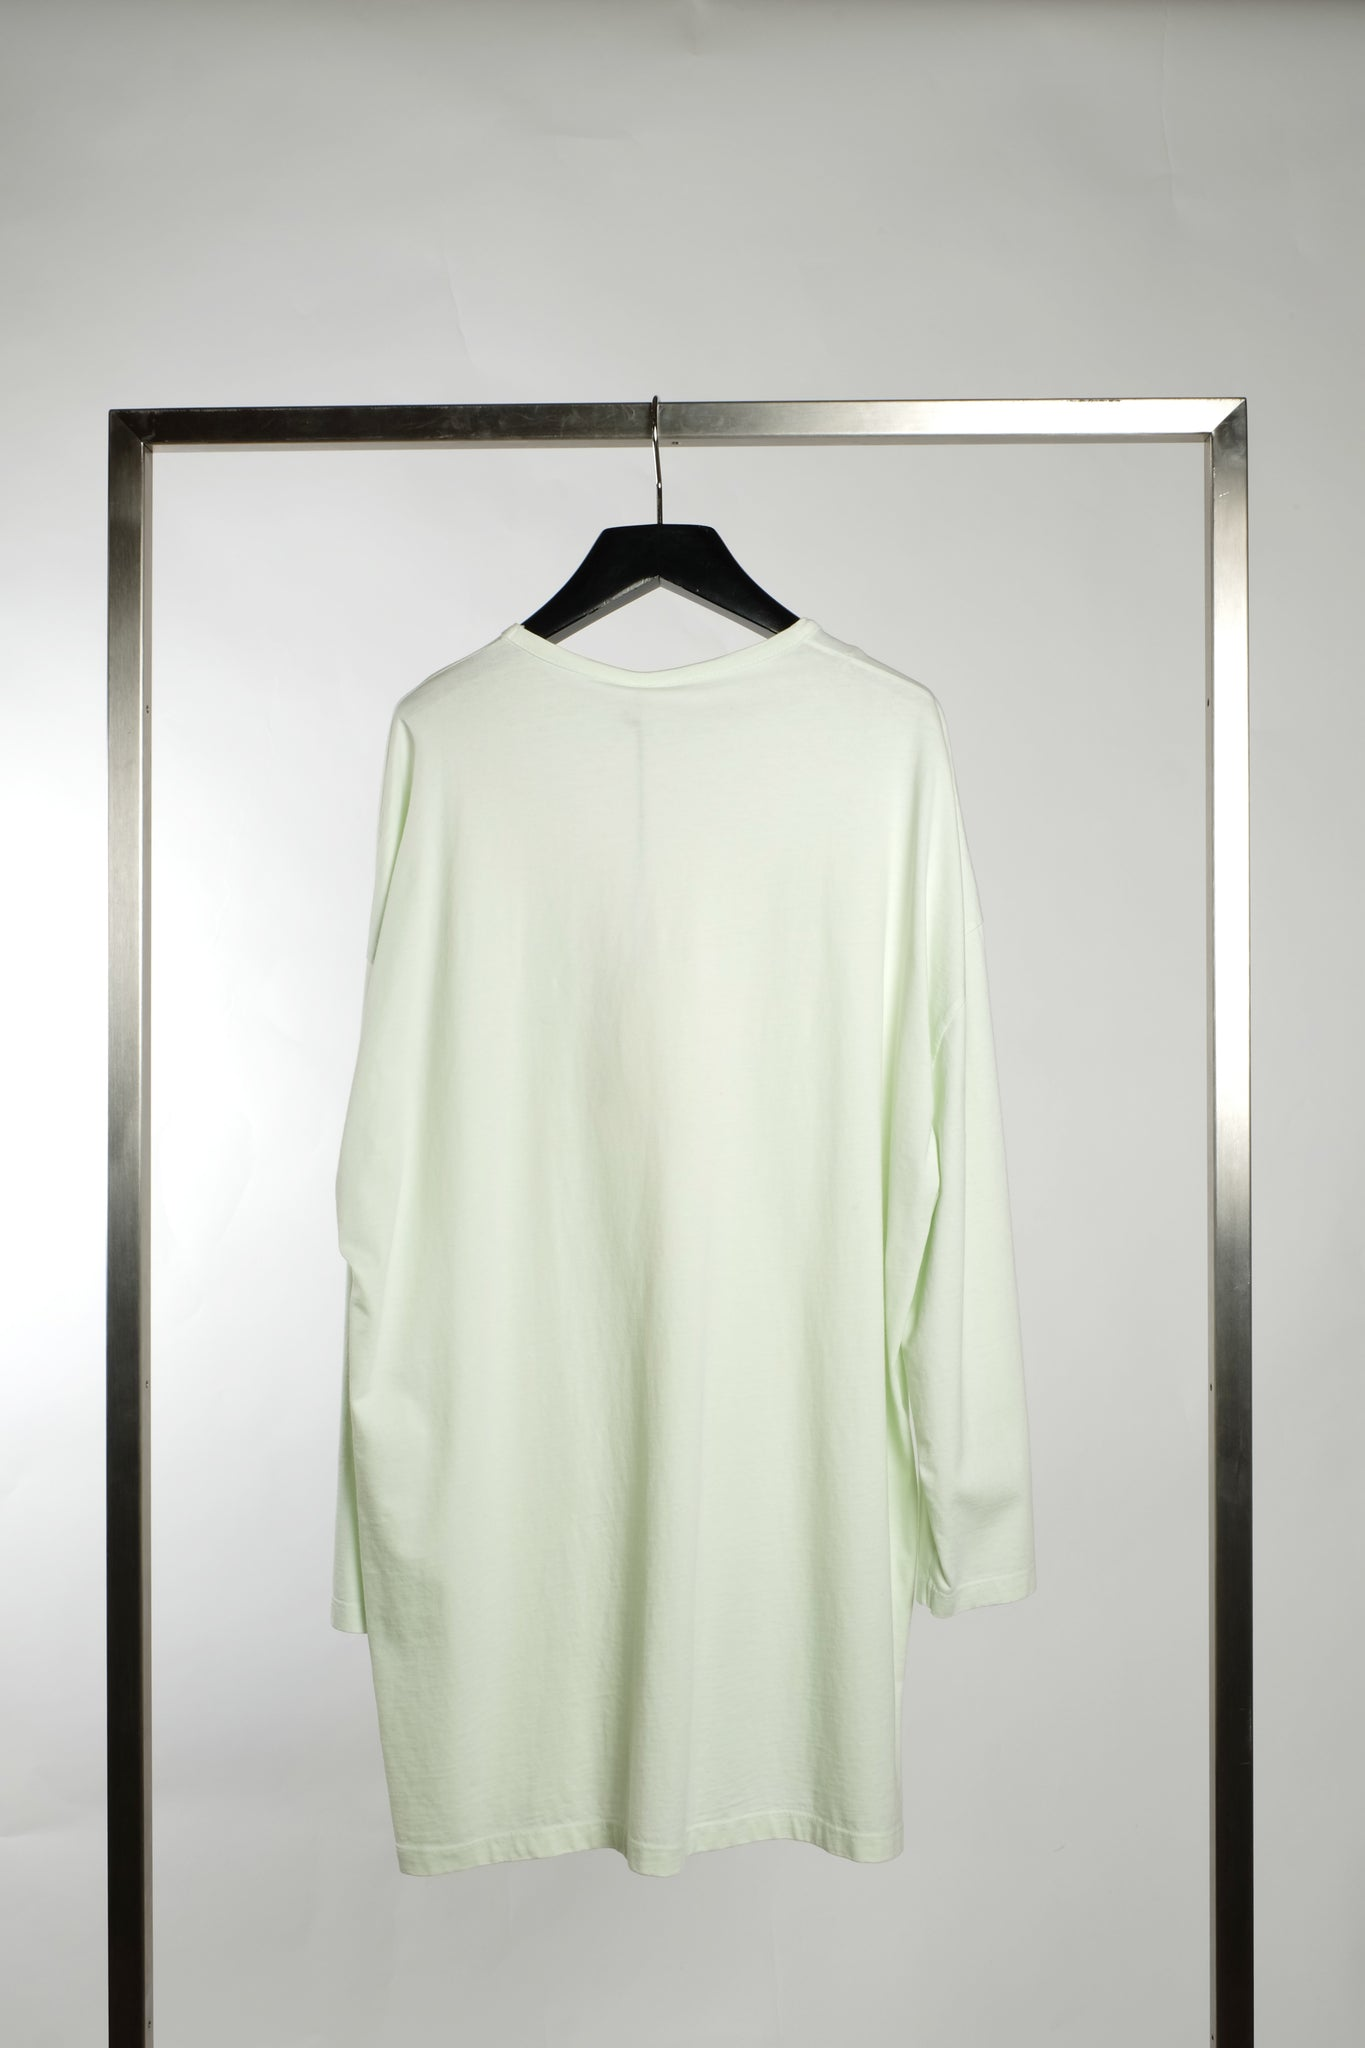 POCKET SHIRT BY CAN PEP REY IN MATCHA LATTE GREEN